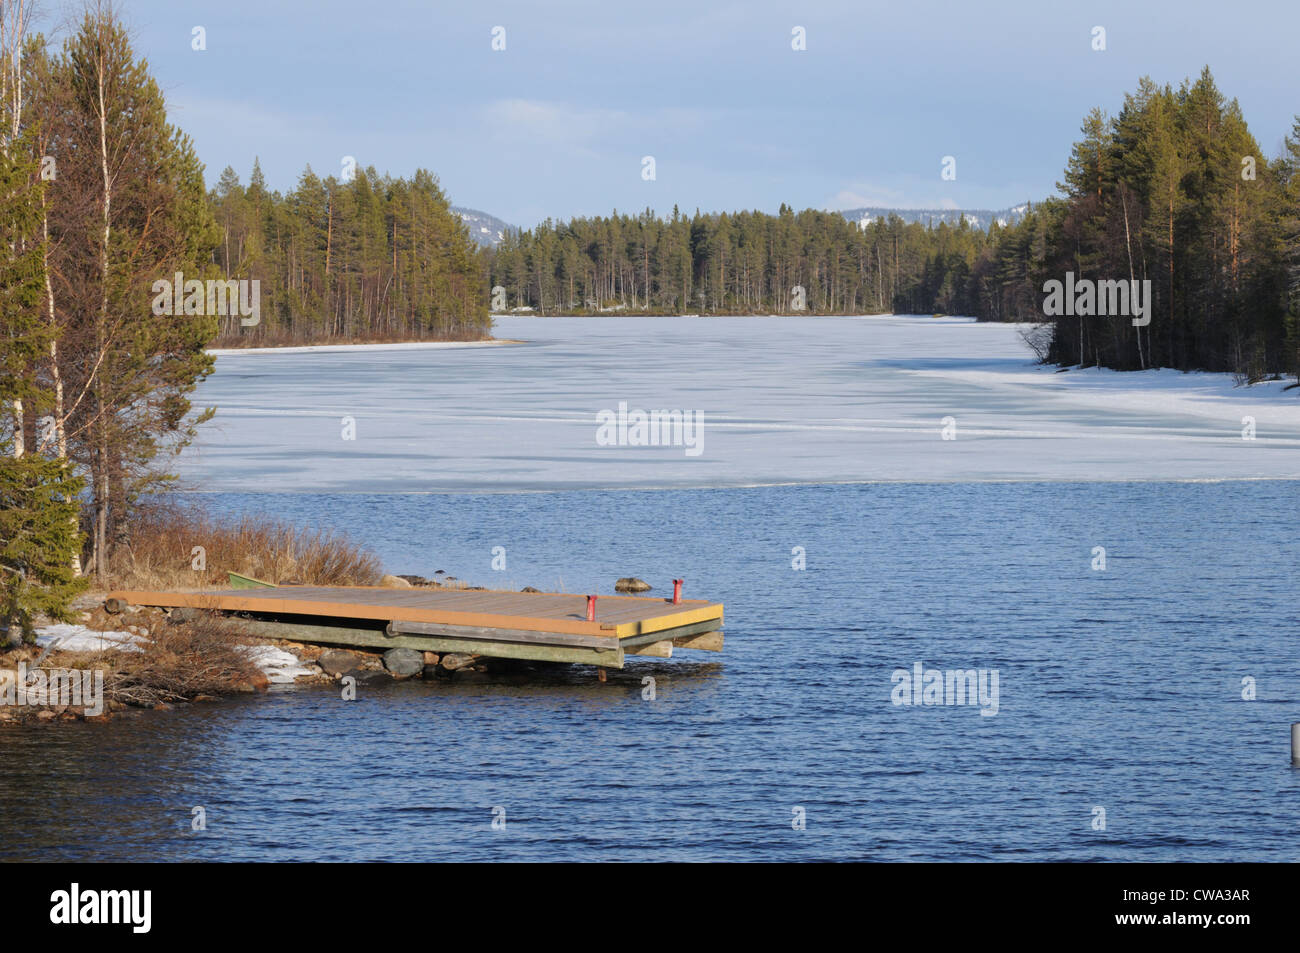 typical Finnish lake frozen in the Karelia region near the artic circle - Stock Image